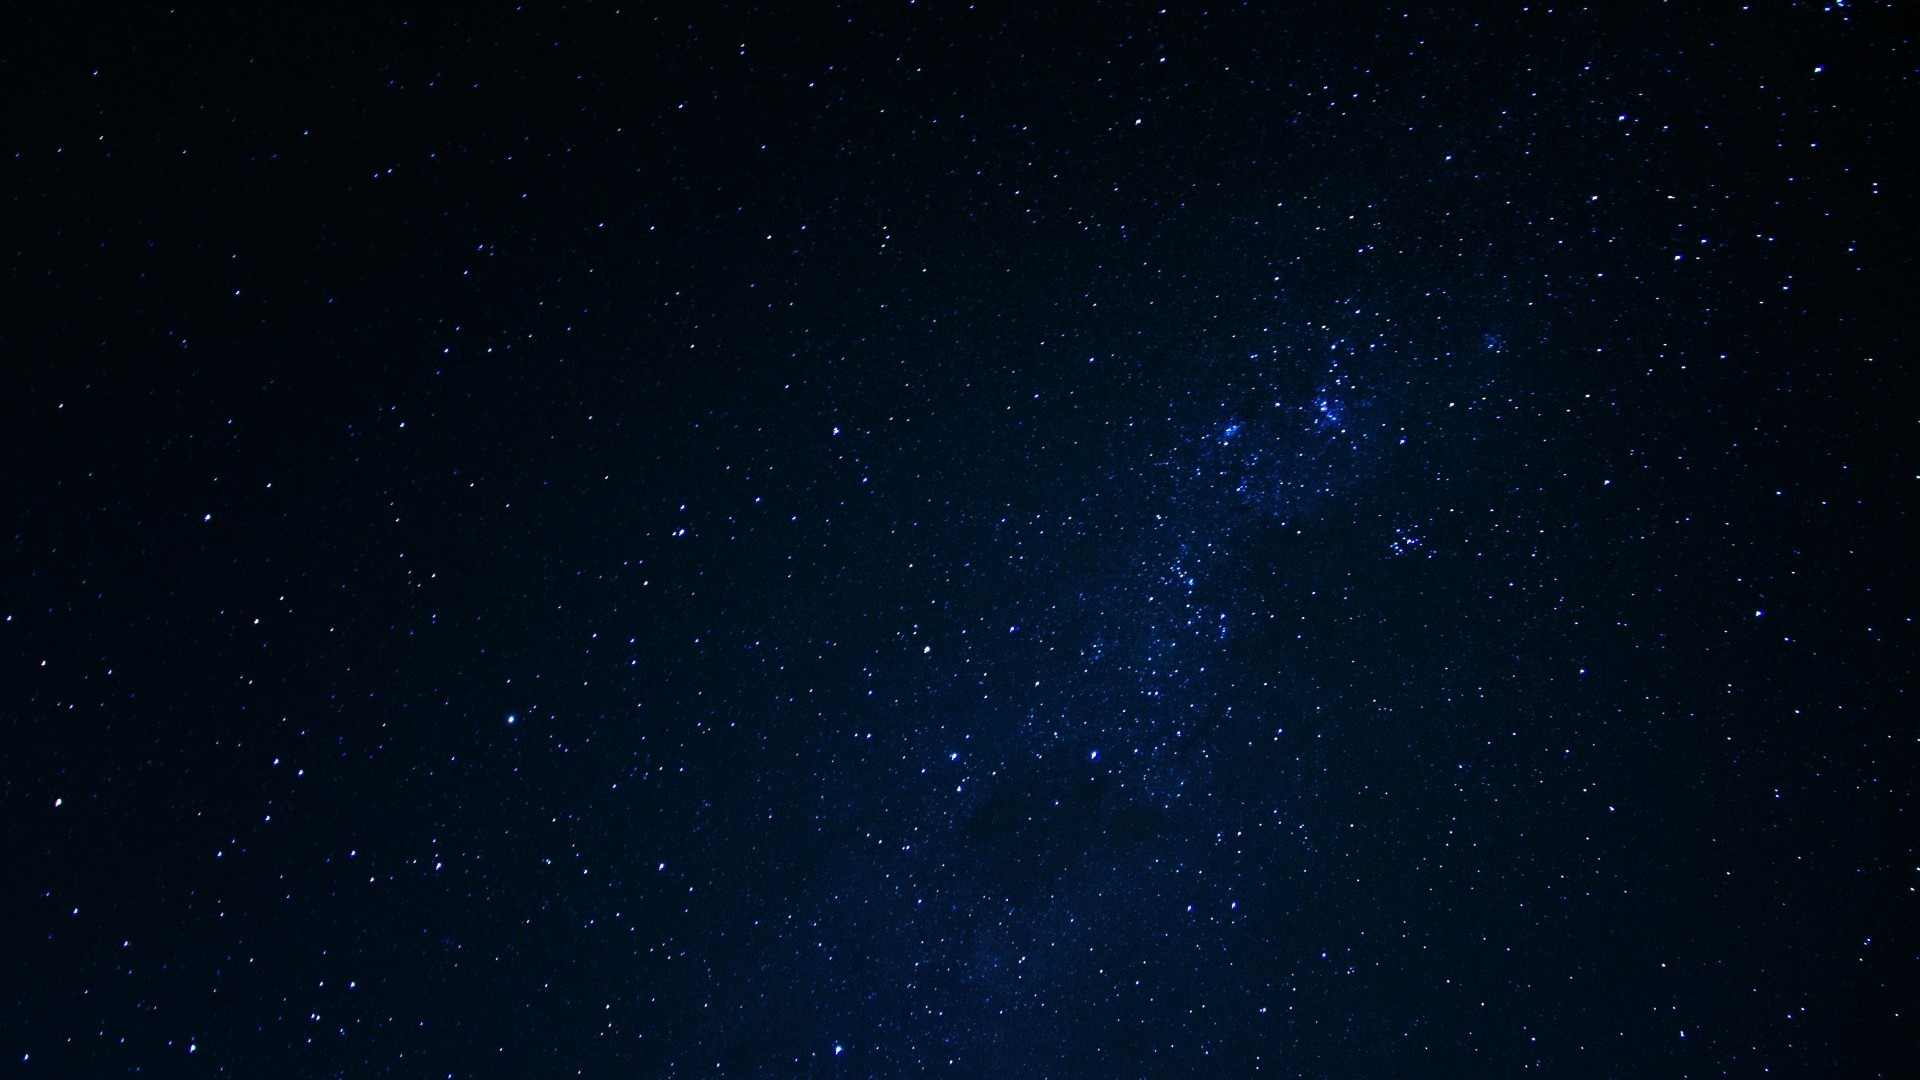 outer space dark stars Wallpapers 1920x1080